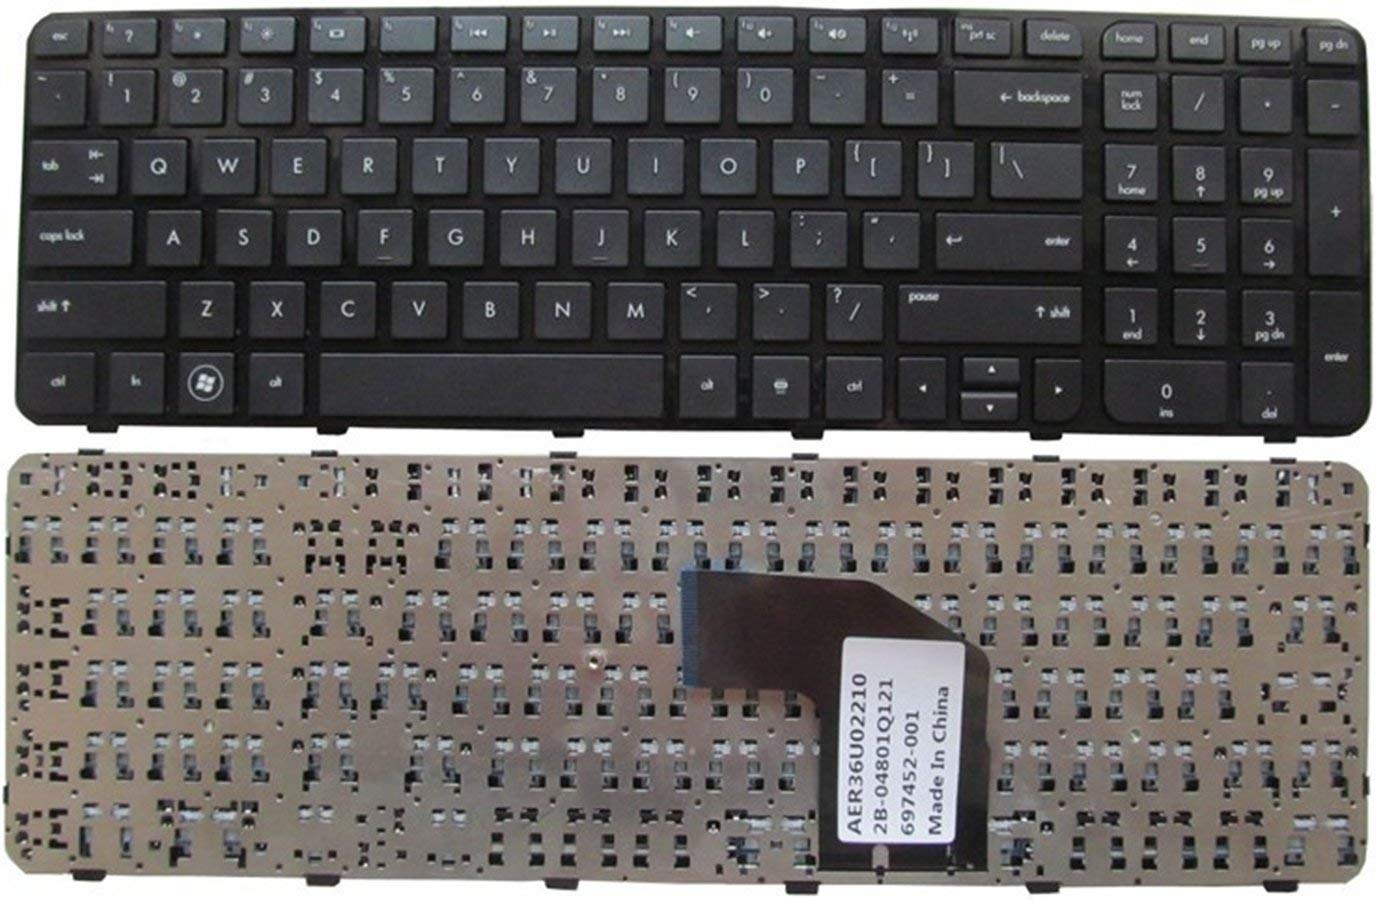 KEYSHEN Laptop Notebook Replacement Keyboard For HP G6-2000 2025 2301 2327 2328 2146TX US Layout